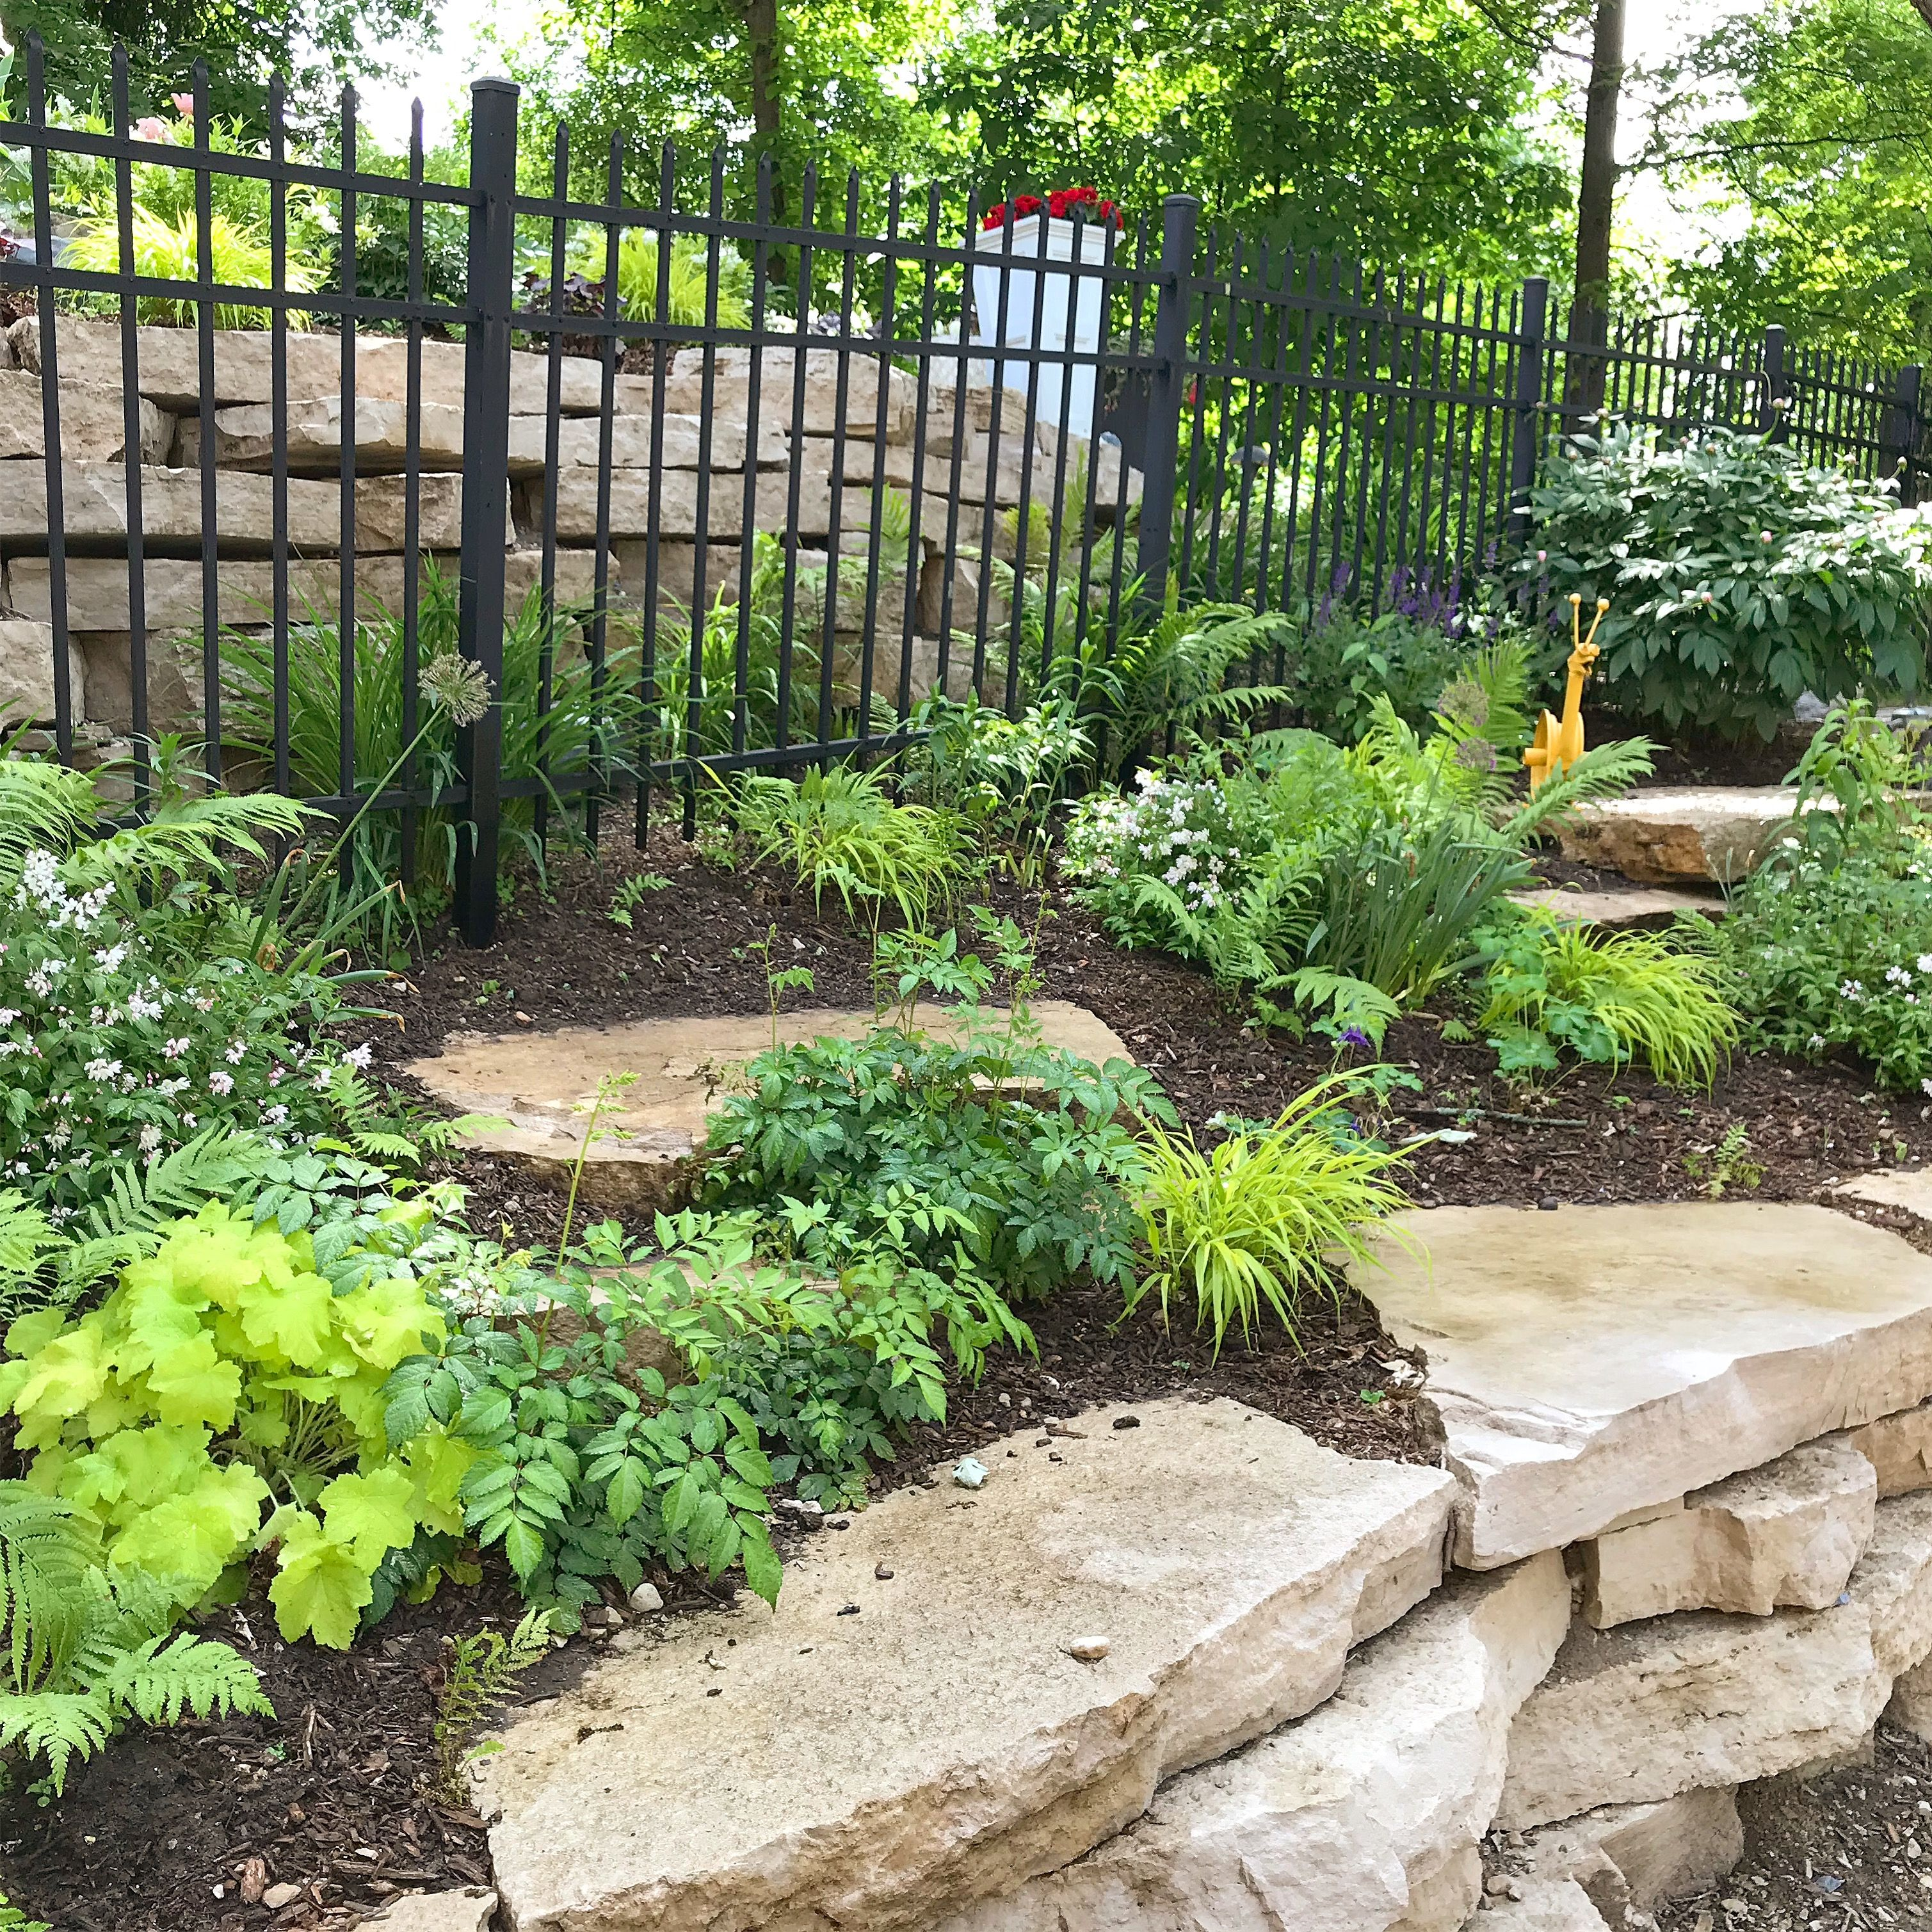 I Selected Easy Care Perennials And Shrubs